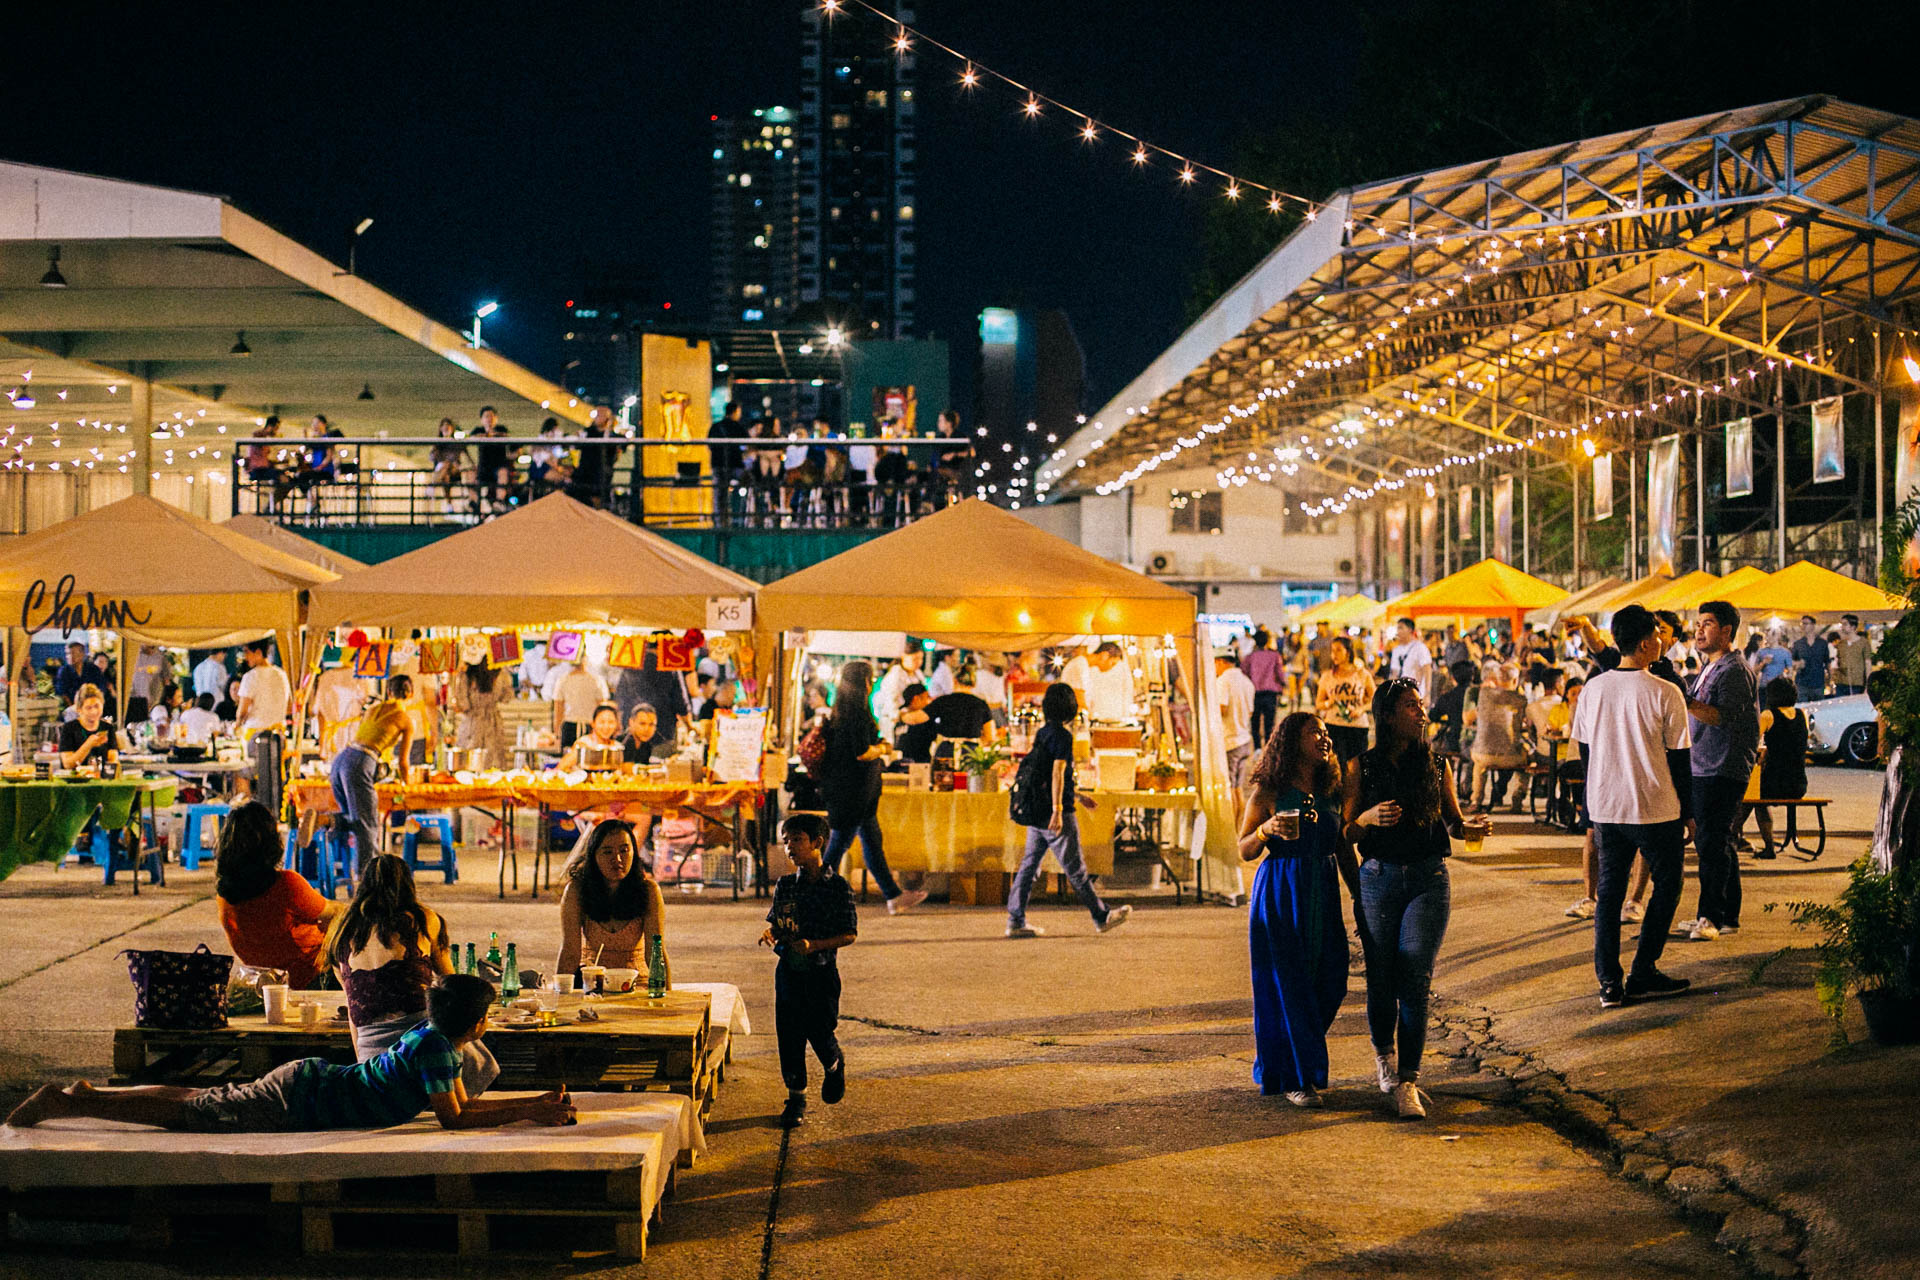 Bringing together over 60 food stalls, private dinners, pop-up restaurants and boat parties.